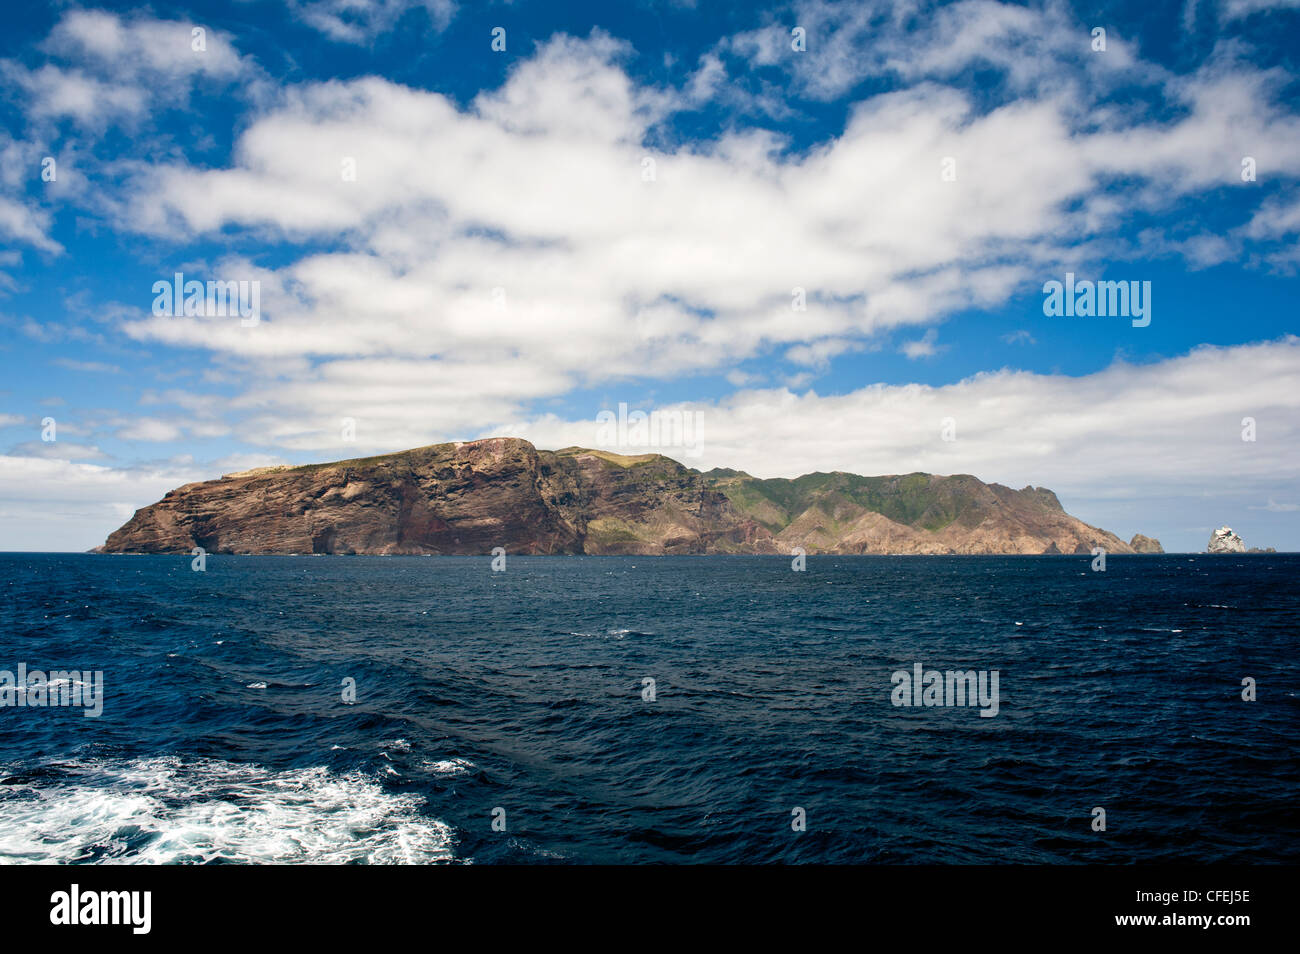 St Helena Island In The South Atlantic Ocean From The RMS